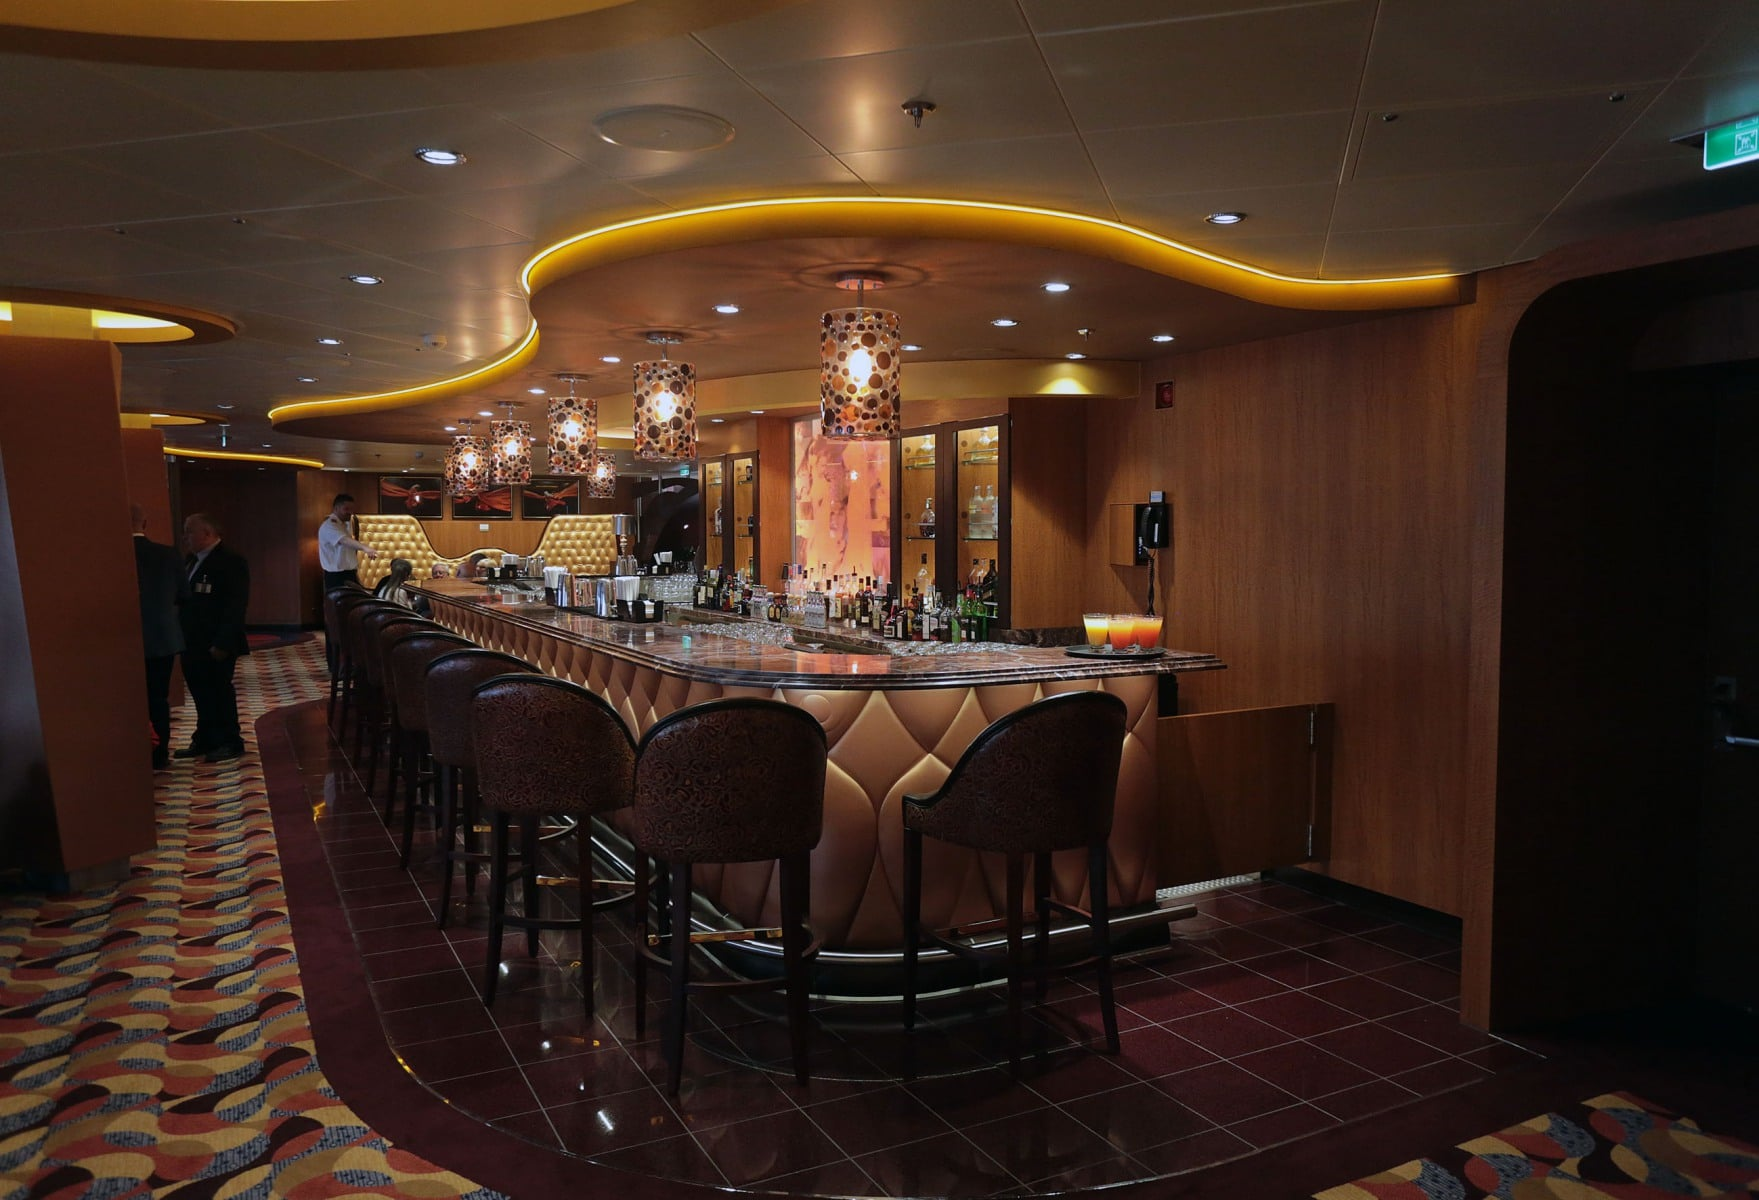 Escala-inaugural-del-crucero-Ovation-of-the-Seas-56